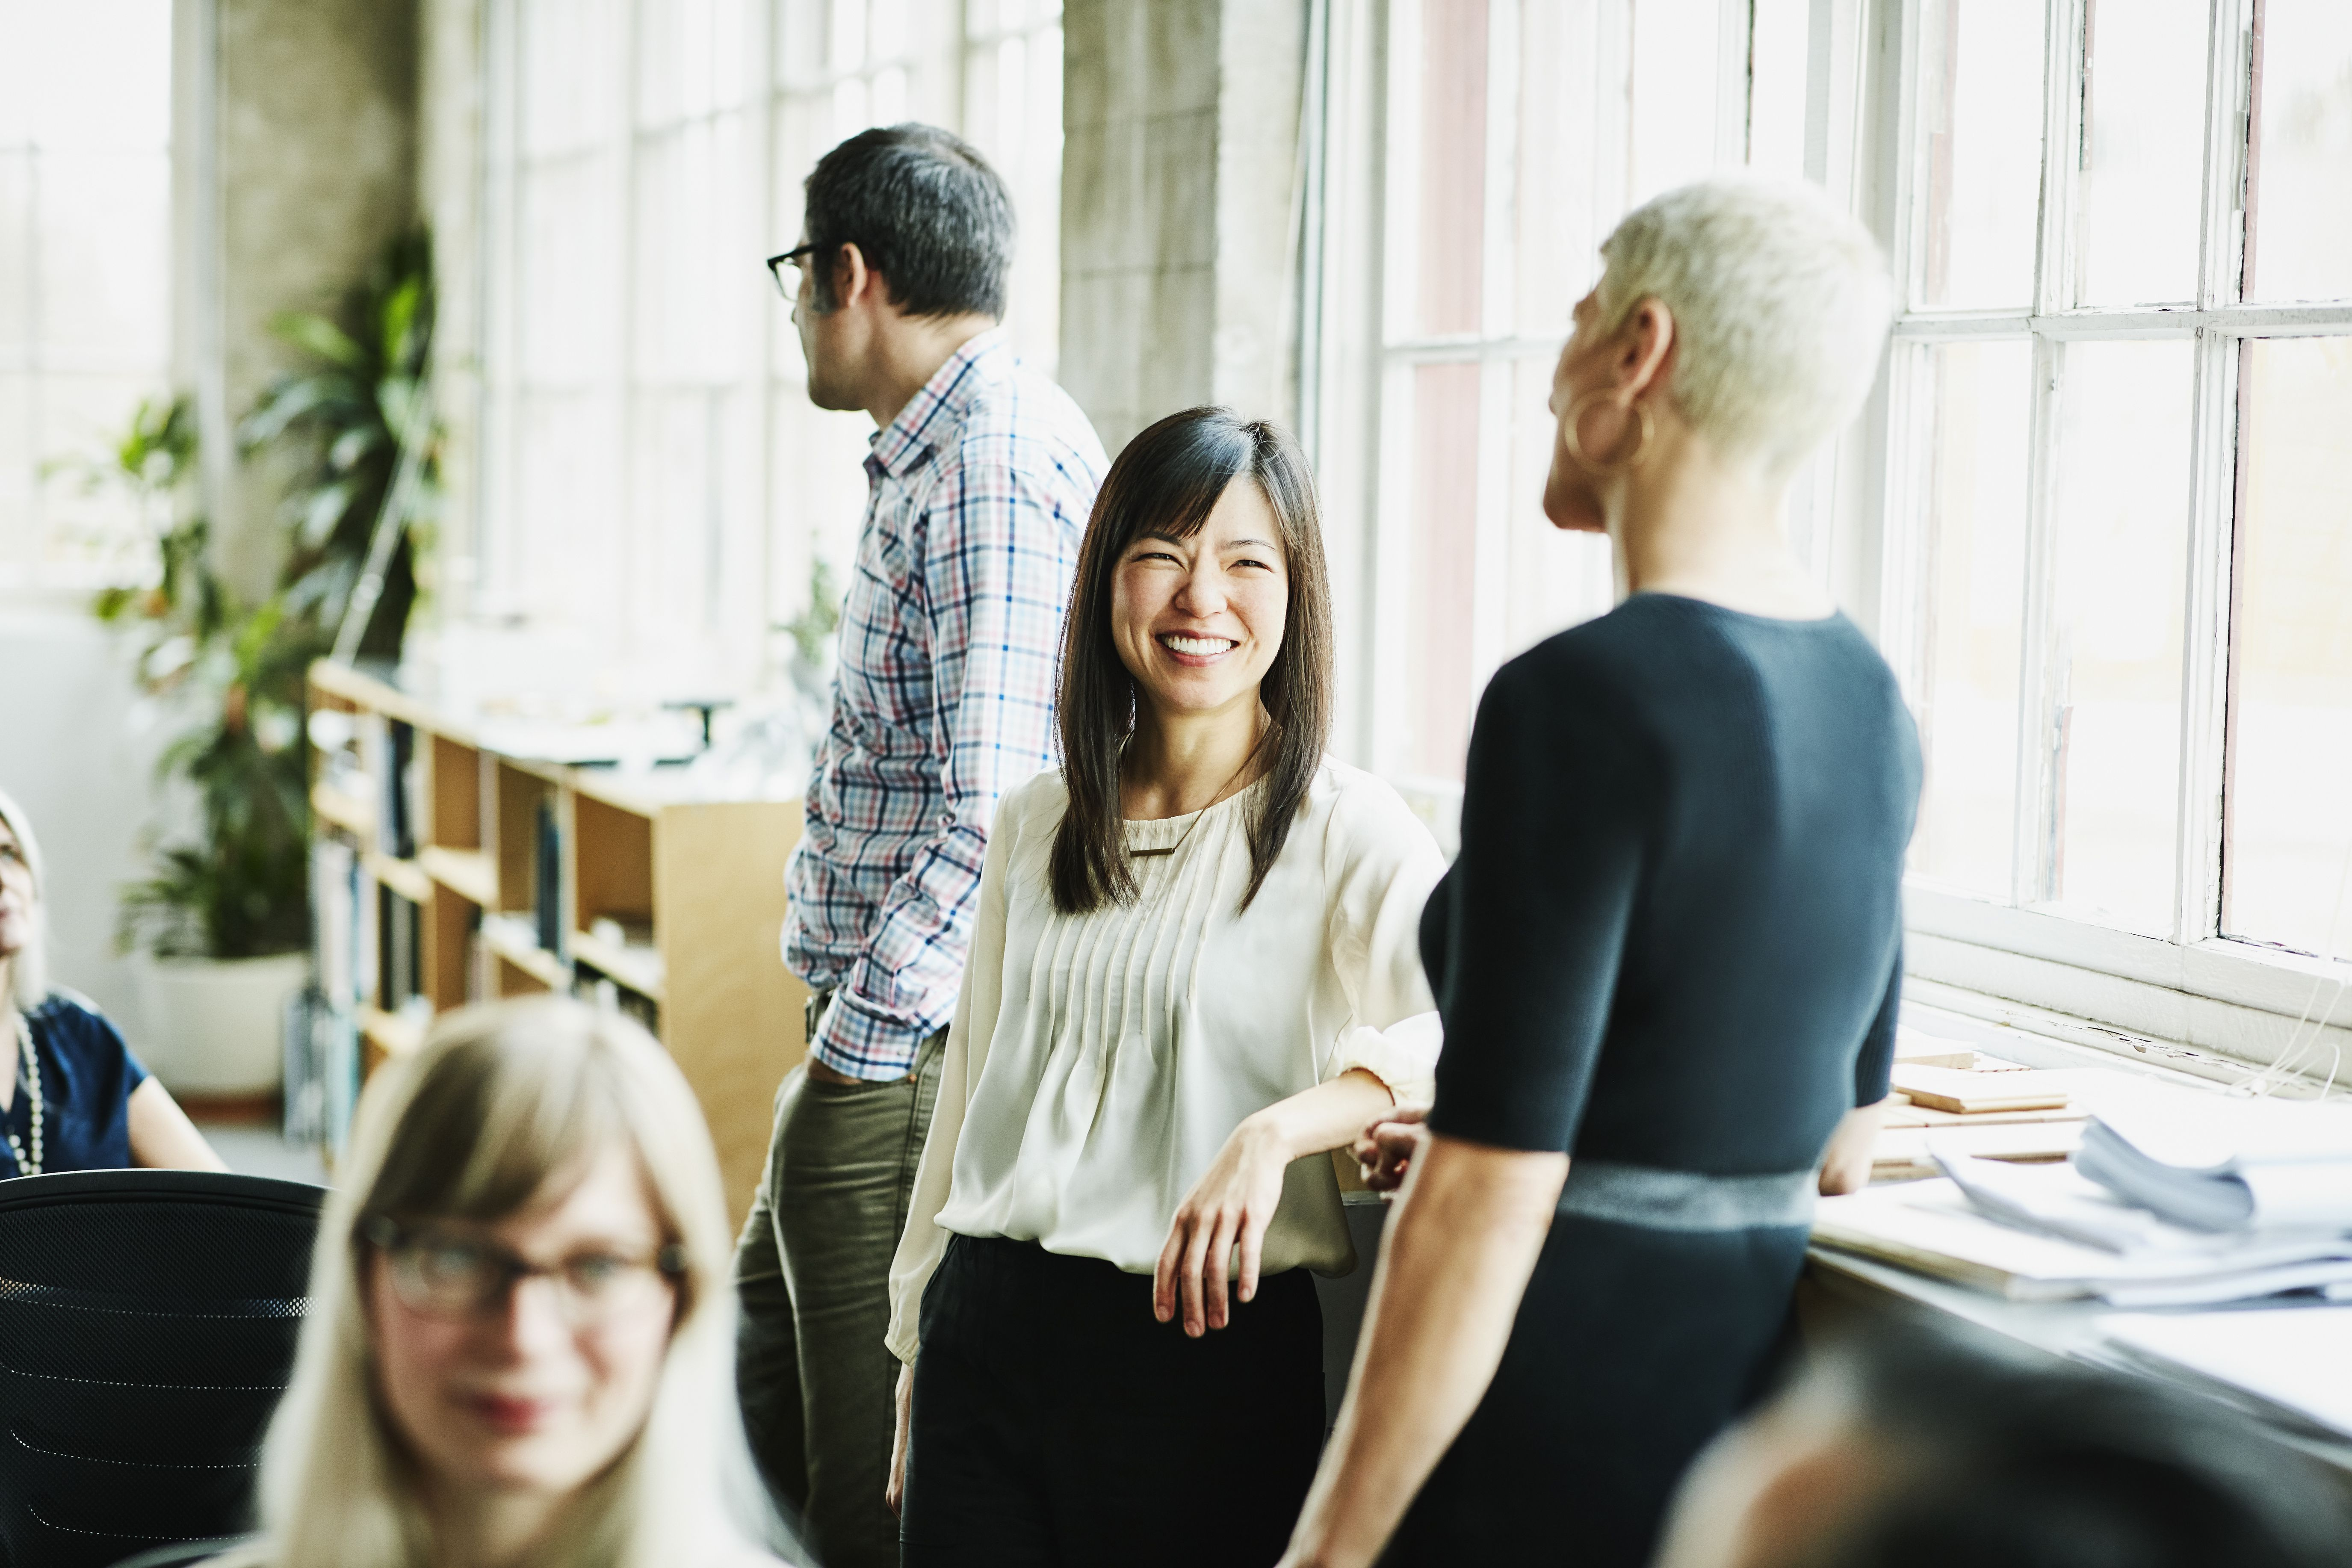 Smiling coworkers in discussion in design studio